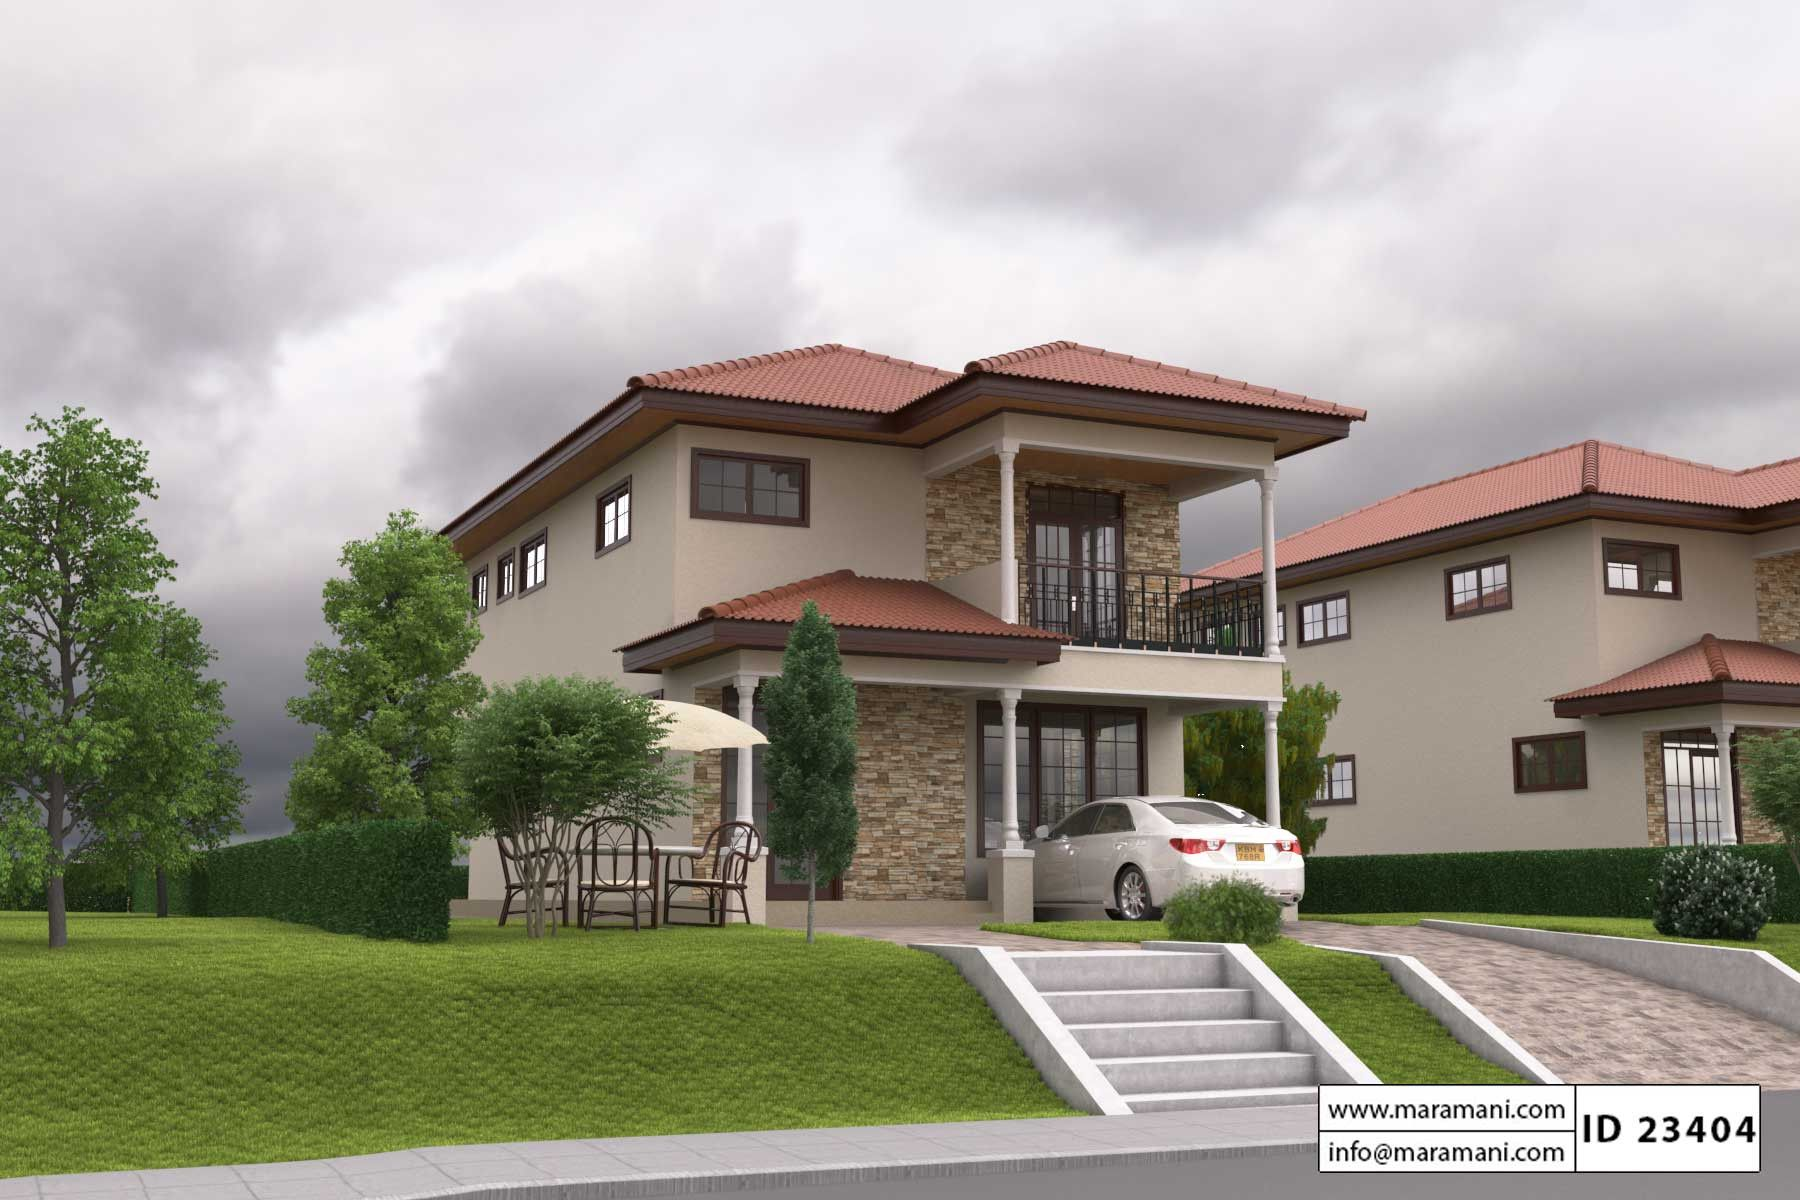 3 Bedroom House Plan Id 23404 Bedroom House Plans Three Bedroom House Plan Wooden House Plans